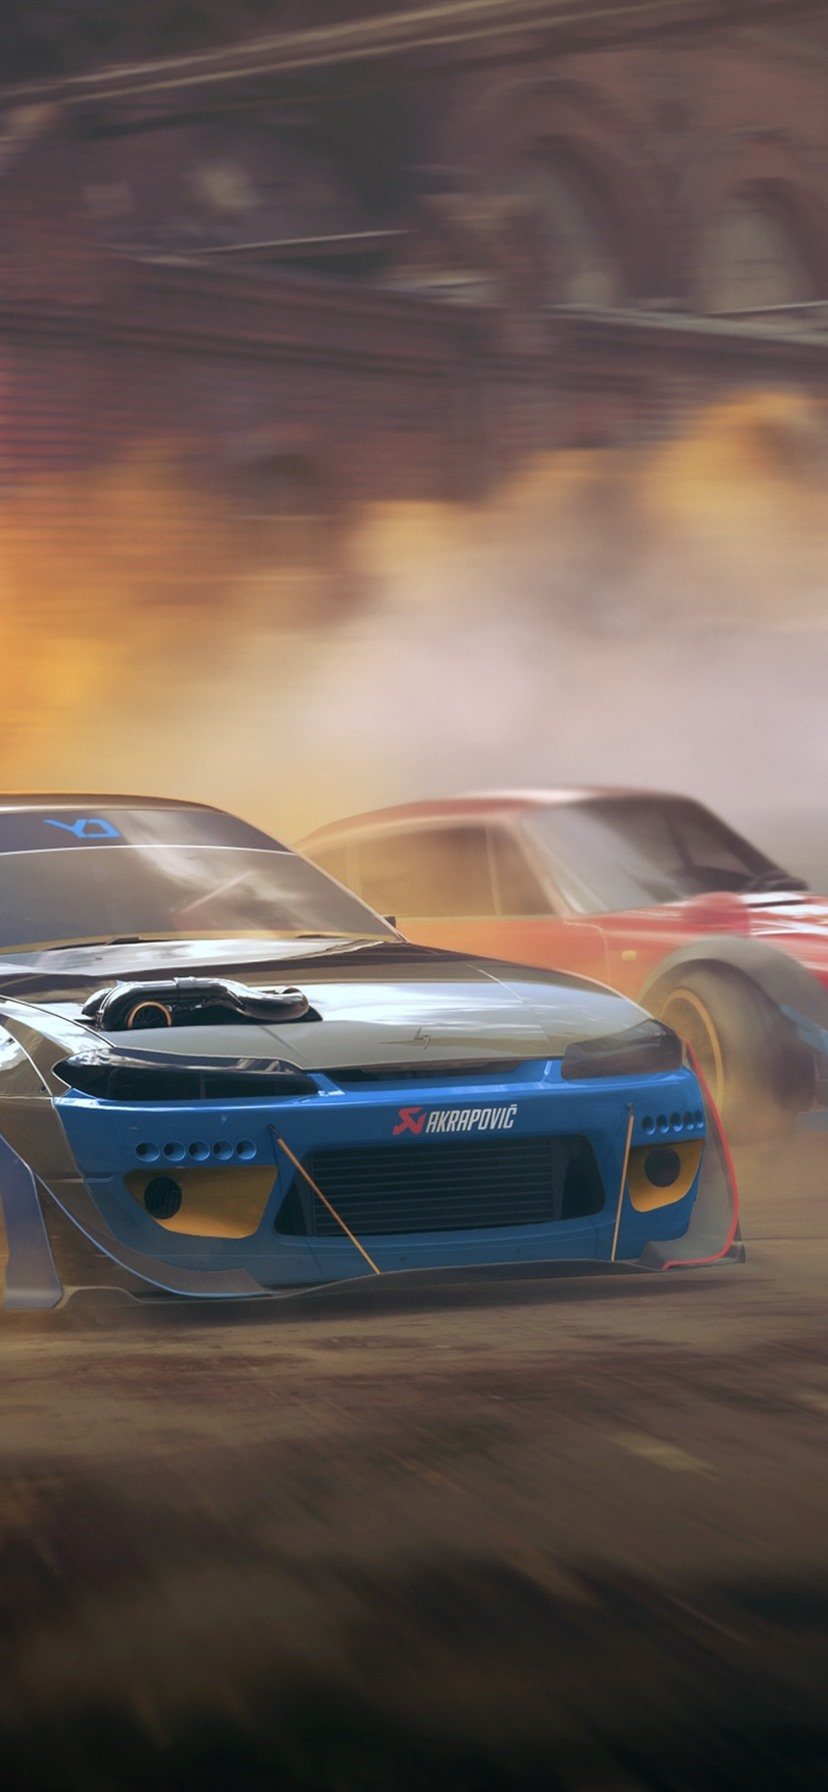 Nissan Silvia S15 And Porsche 911 Cars Speed Dust 828x1792 Iphone